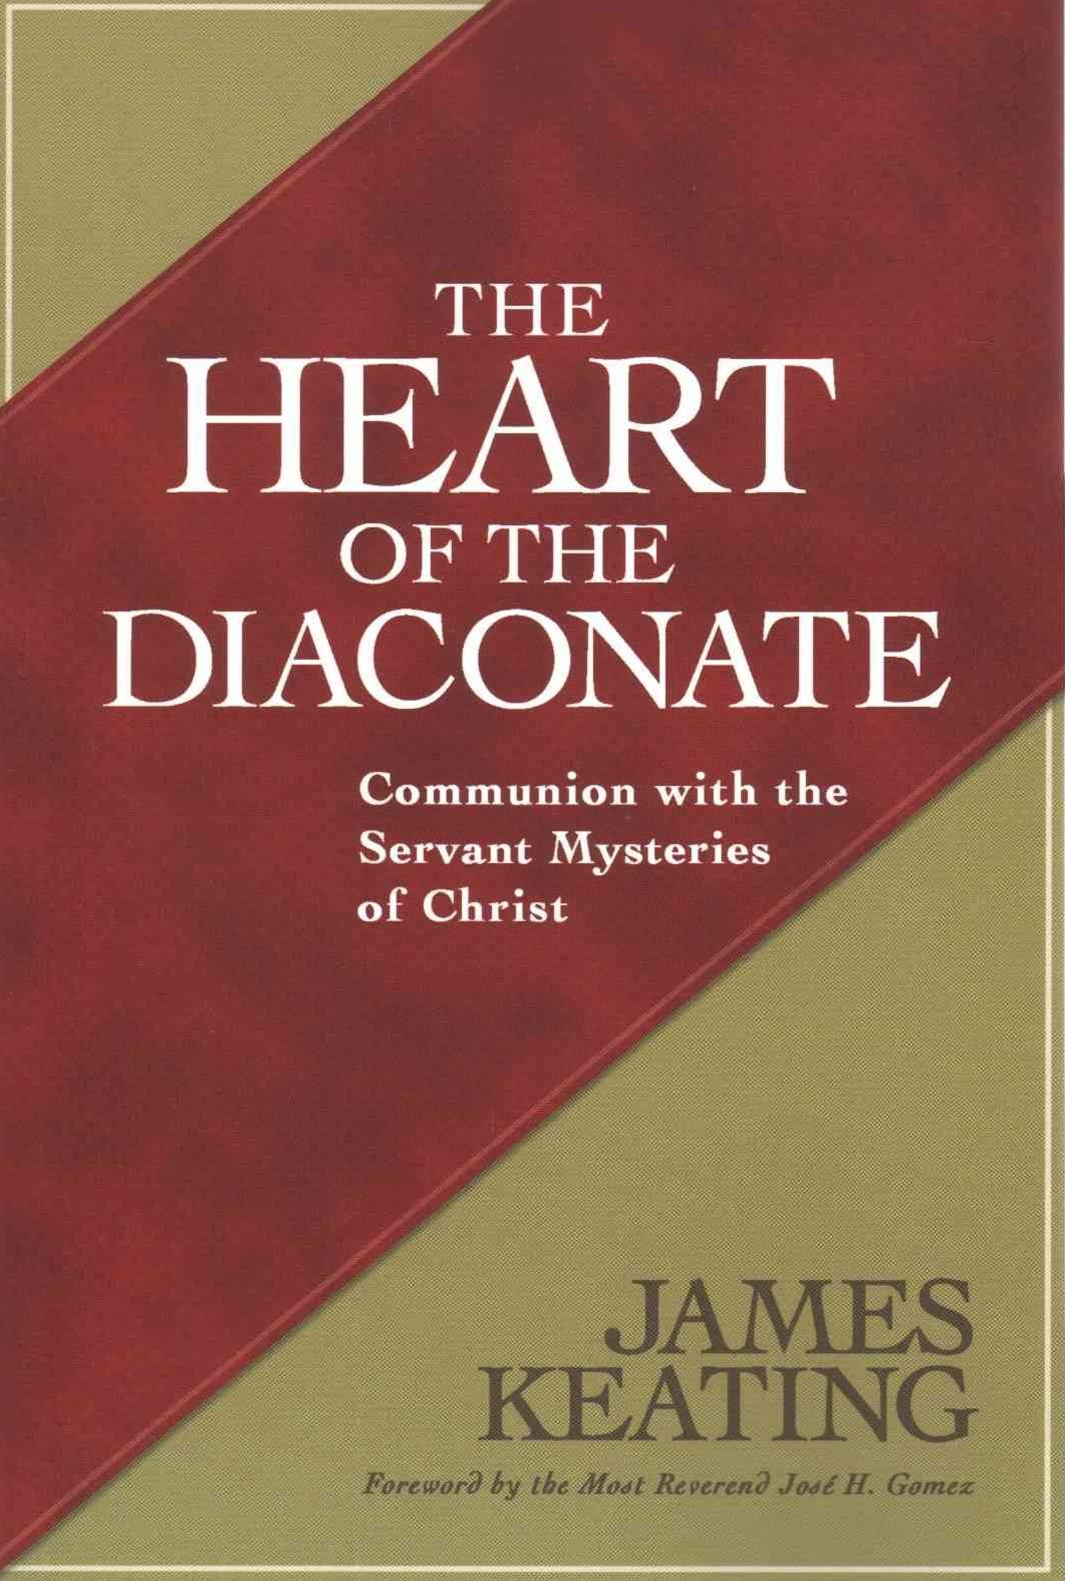 Heart of the Diaconate